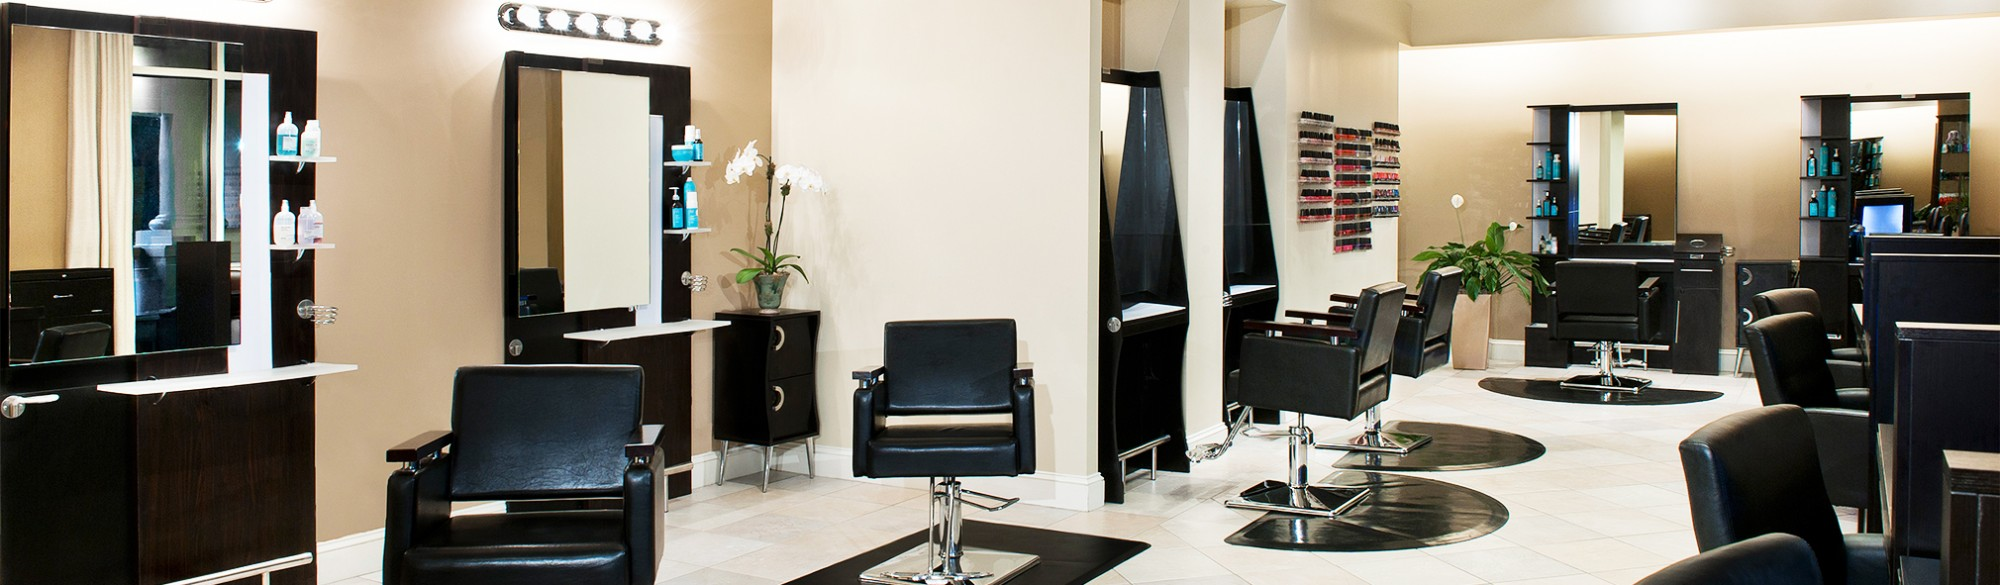 Salon Spa at the Balantyne